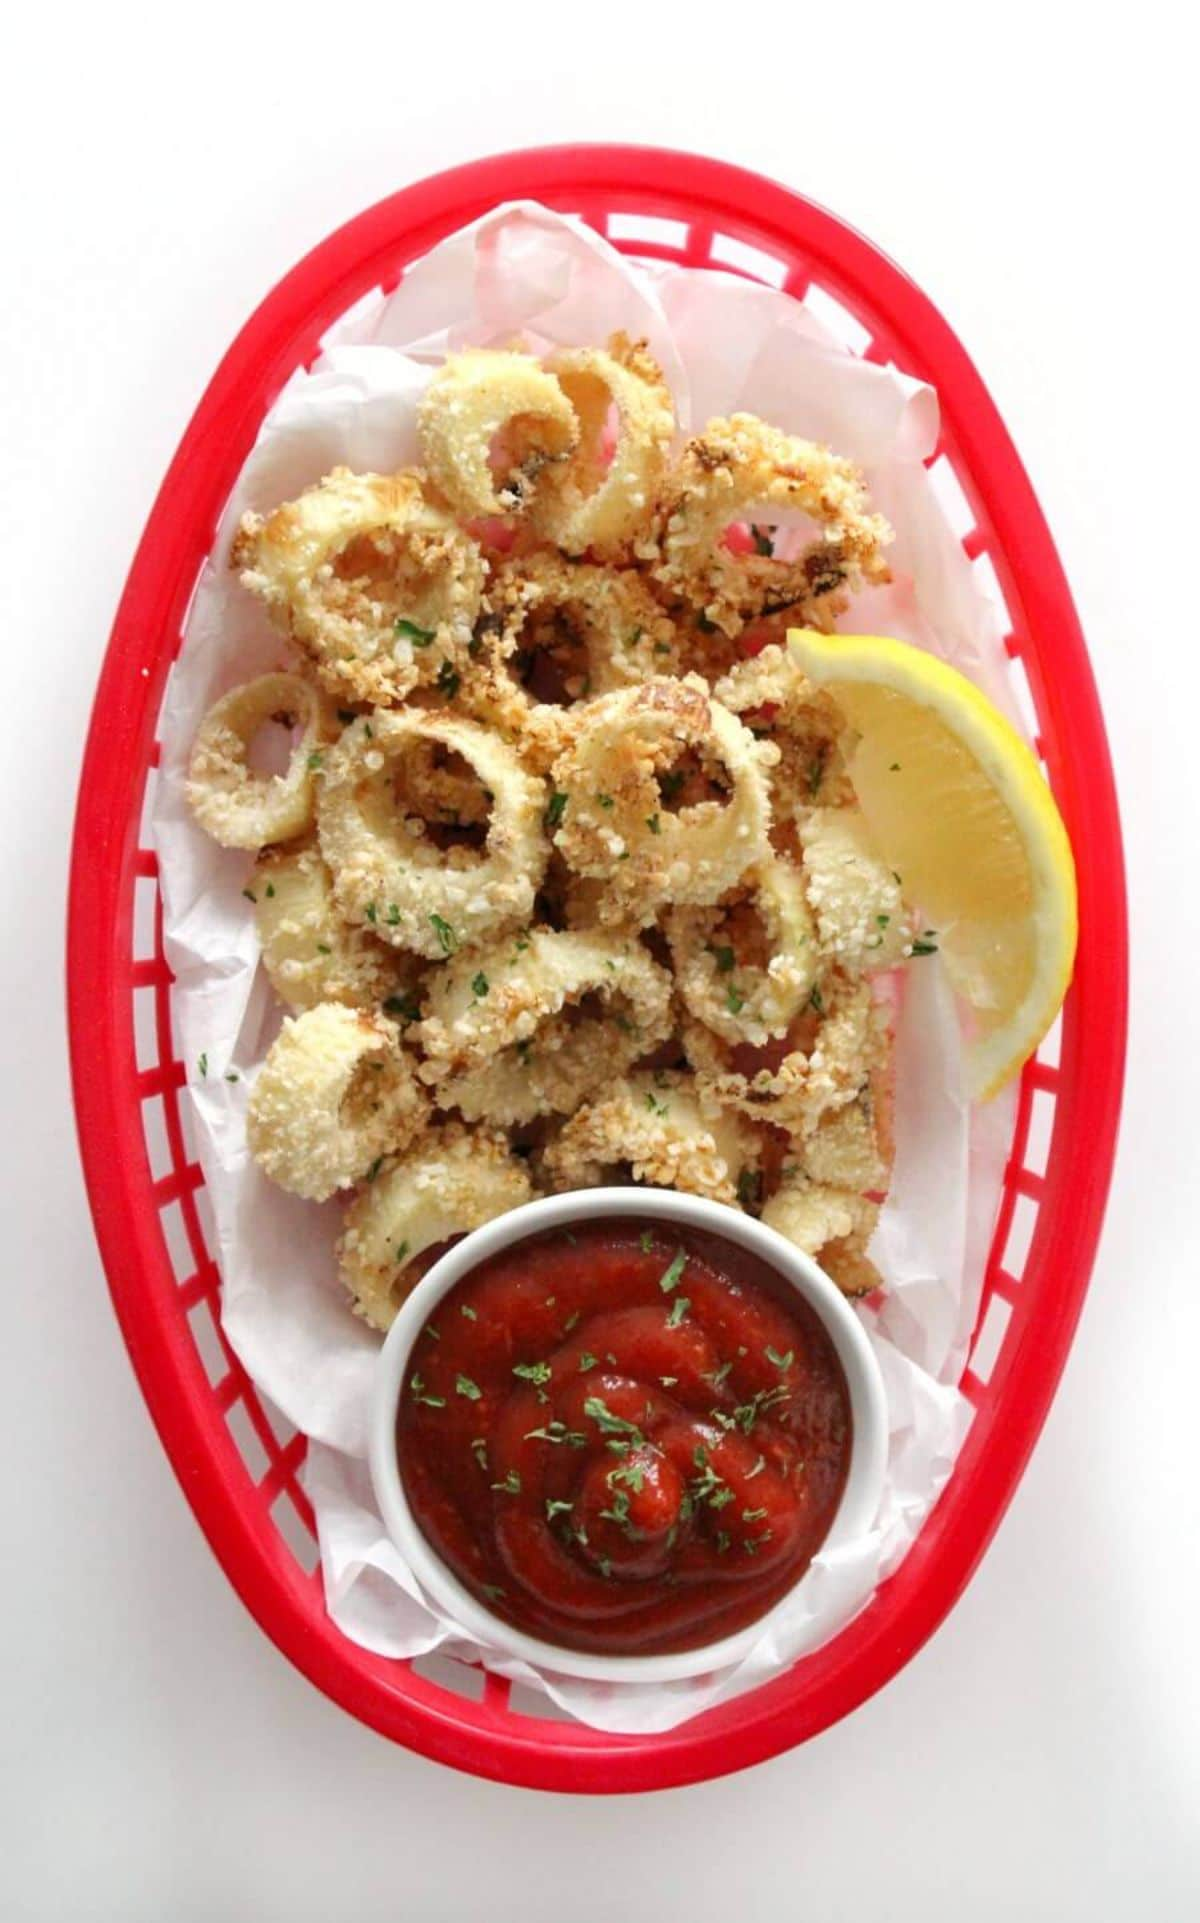 a top view of a red woven basket filled with vegan calamari rings next to a lemon slice and a bowl of red sauce